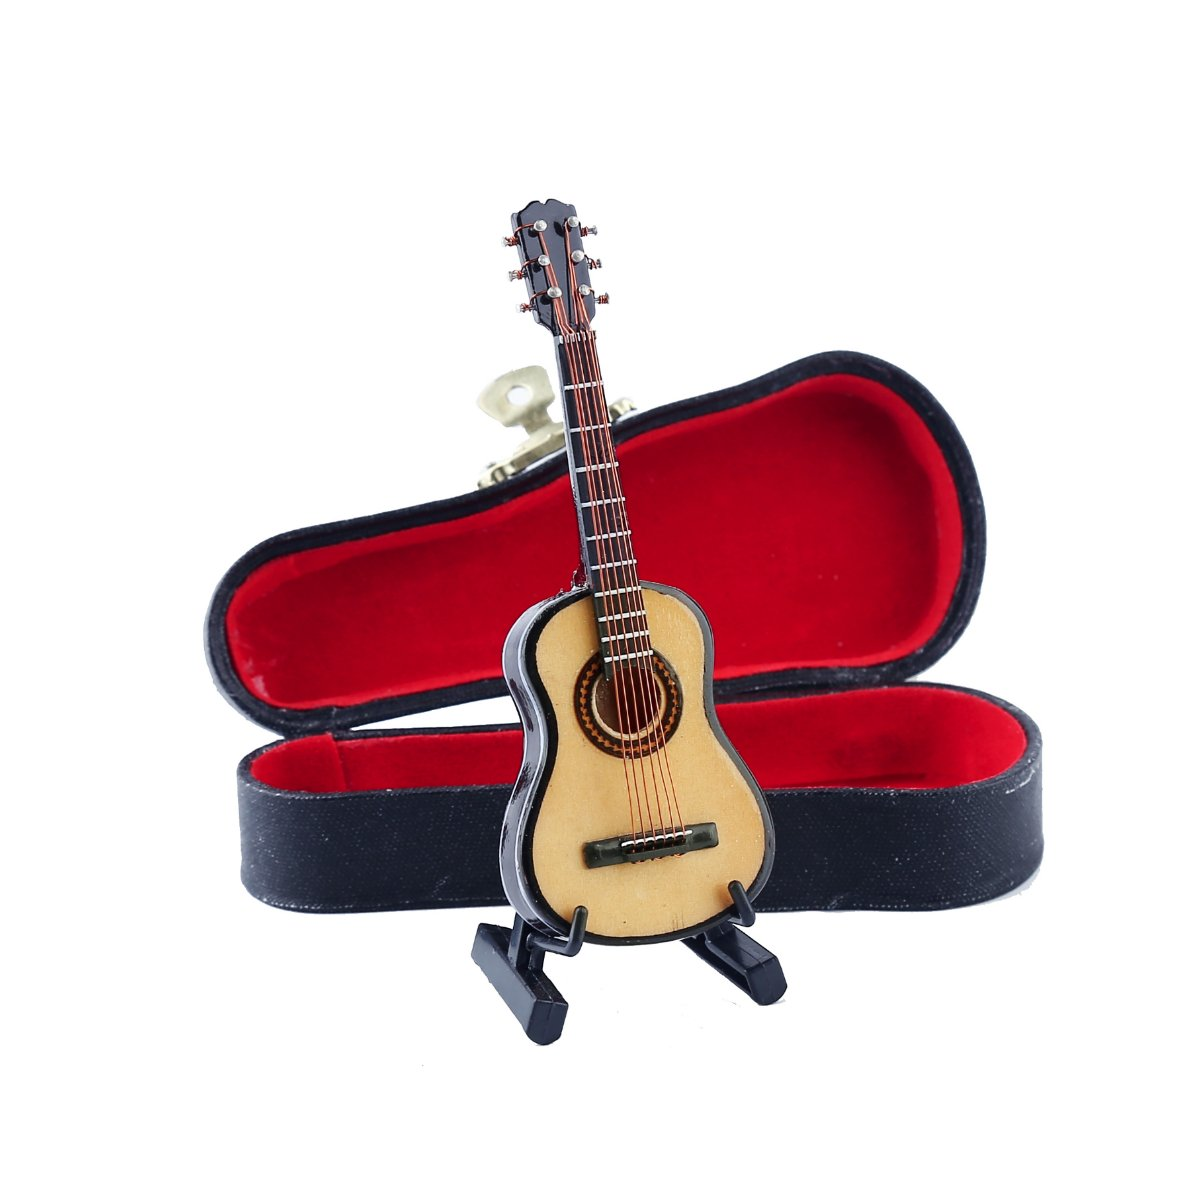 Seawoo Wooden Miniature Guitar with Stand and Case Mini Musical Instrument Miniature Dollhouse Model Home decoration (3.94''x1.42''x0.59'')